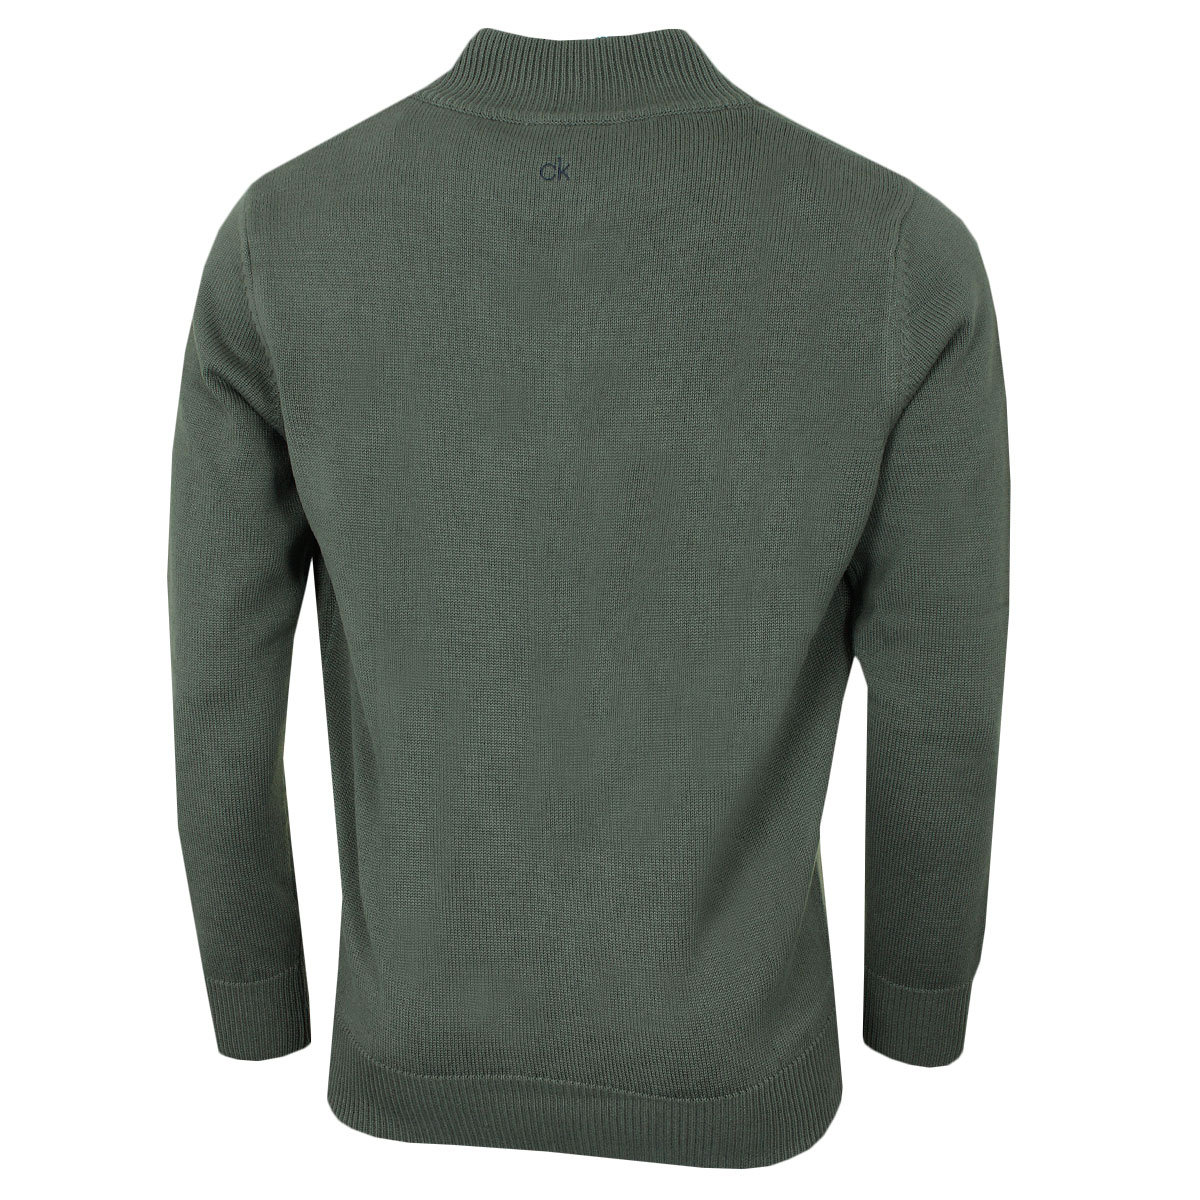 Calvin-Klein-Golf-Mens-2019-Chunky-Cotton-1-2-Zip-Golf-Top-Sweater-37-OFF-RRP thumbnail 34